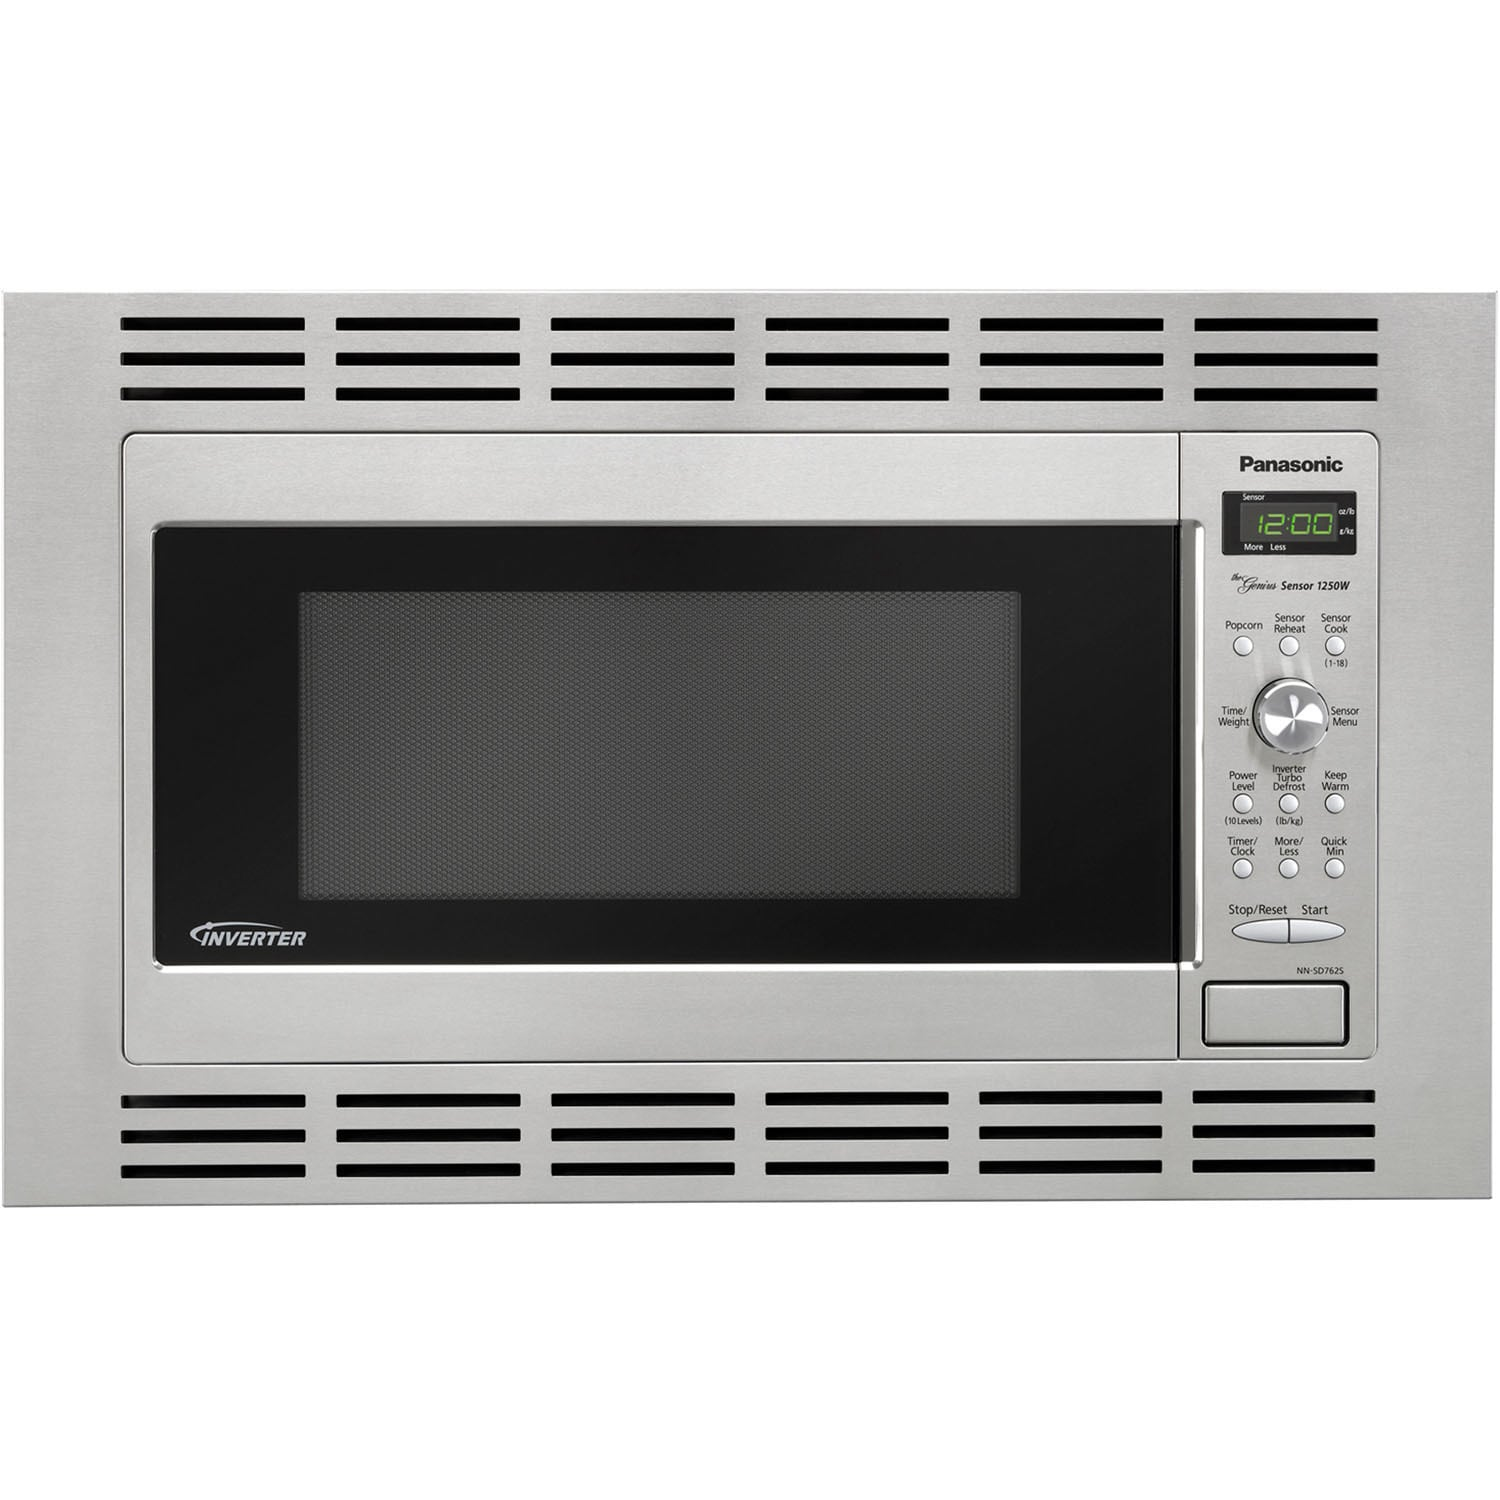 Panasonic 27 Inch Stainless Steel Trim Kit For 2 Cubic Foot Microwaves Free Shipping Today 16797229